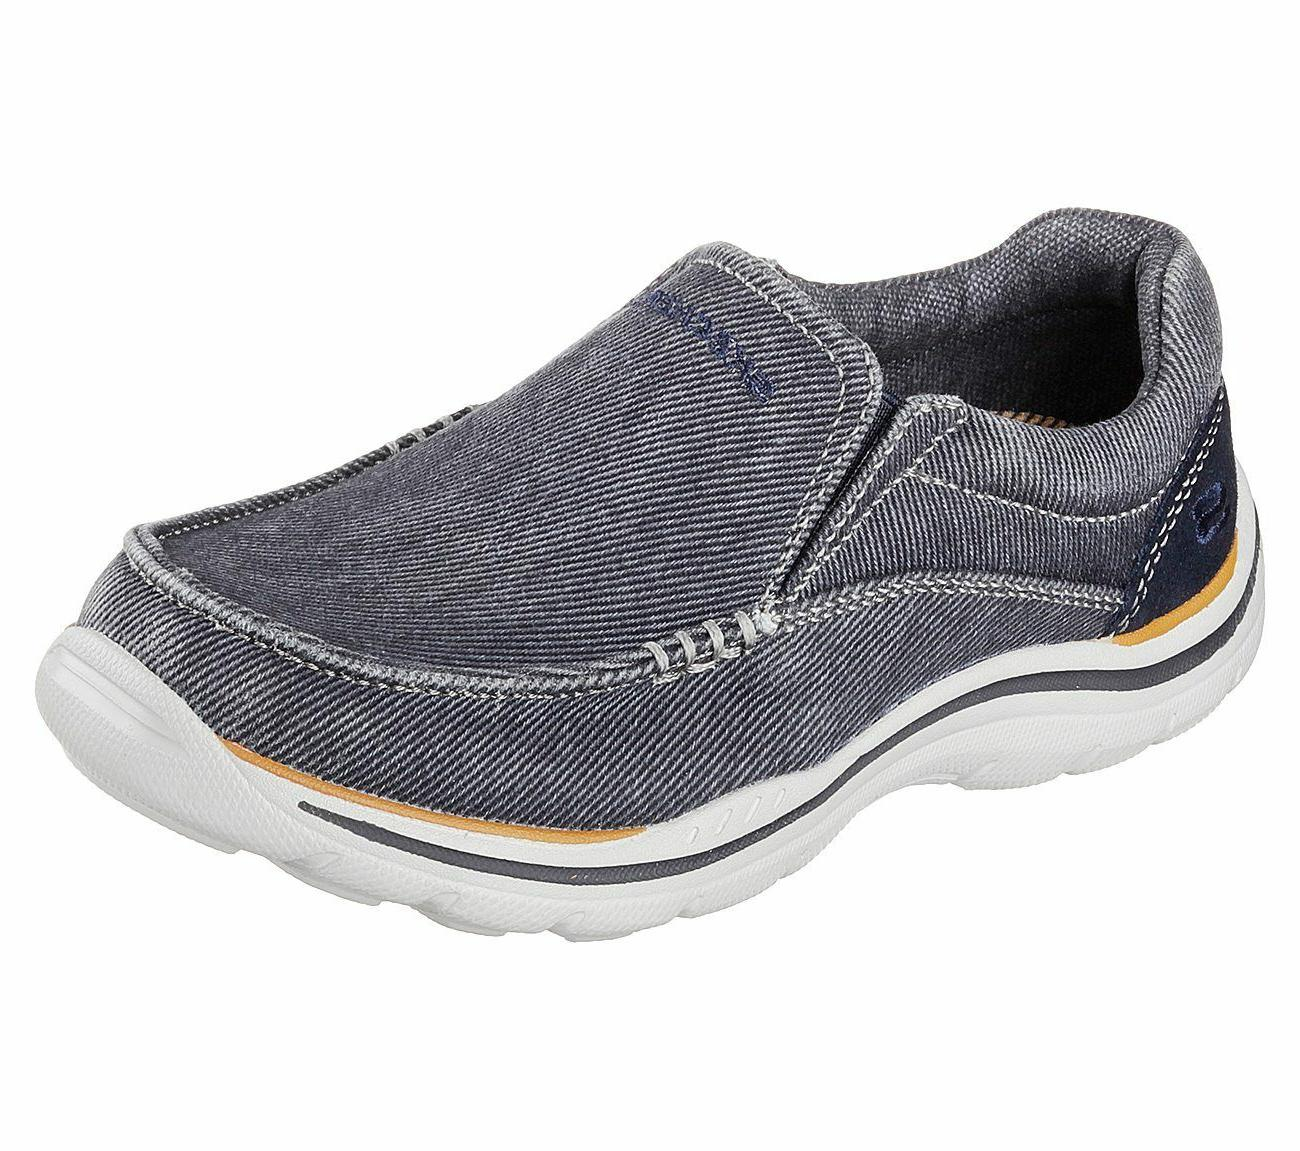 Skechers Relaxed Expected casual